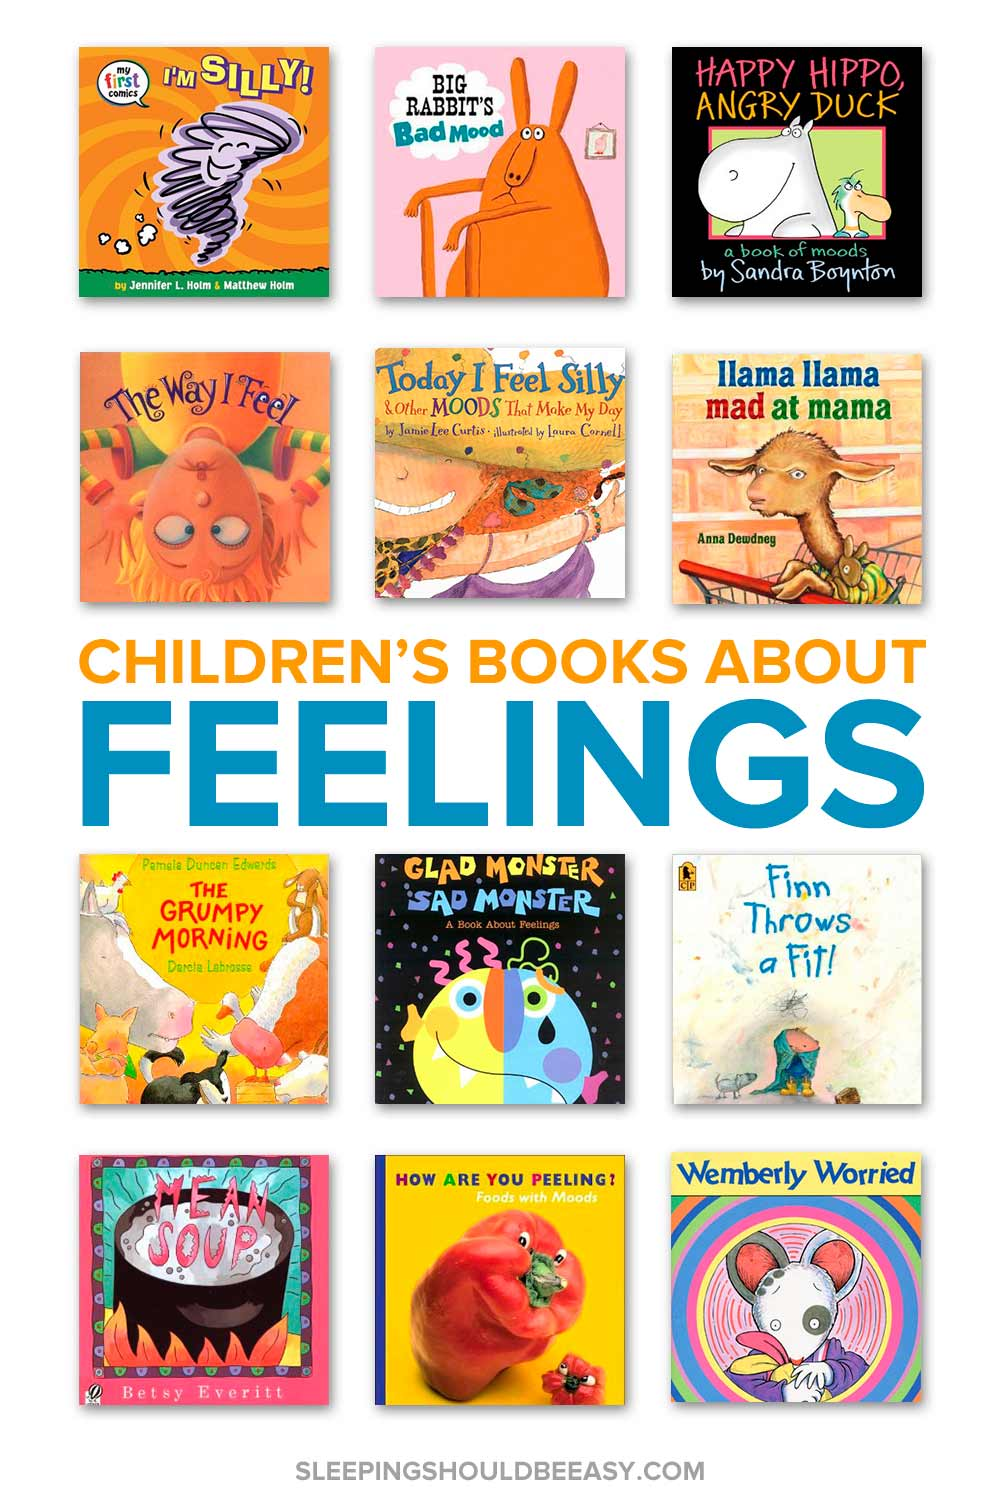 A collection of children's books about feelings